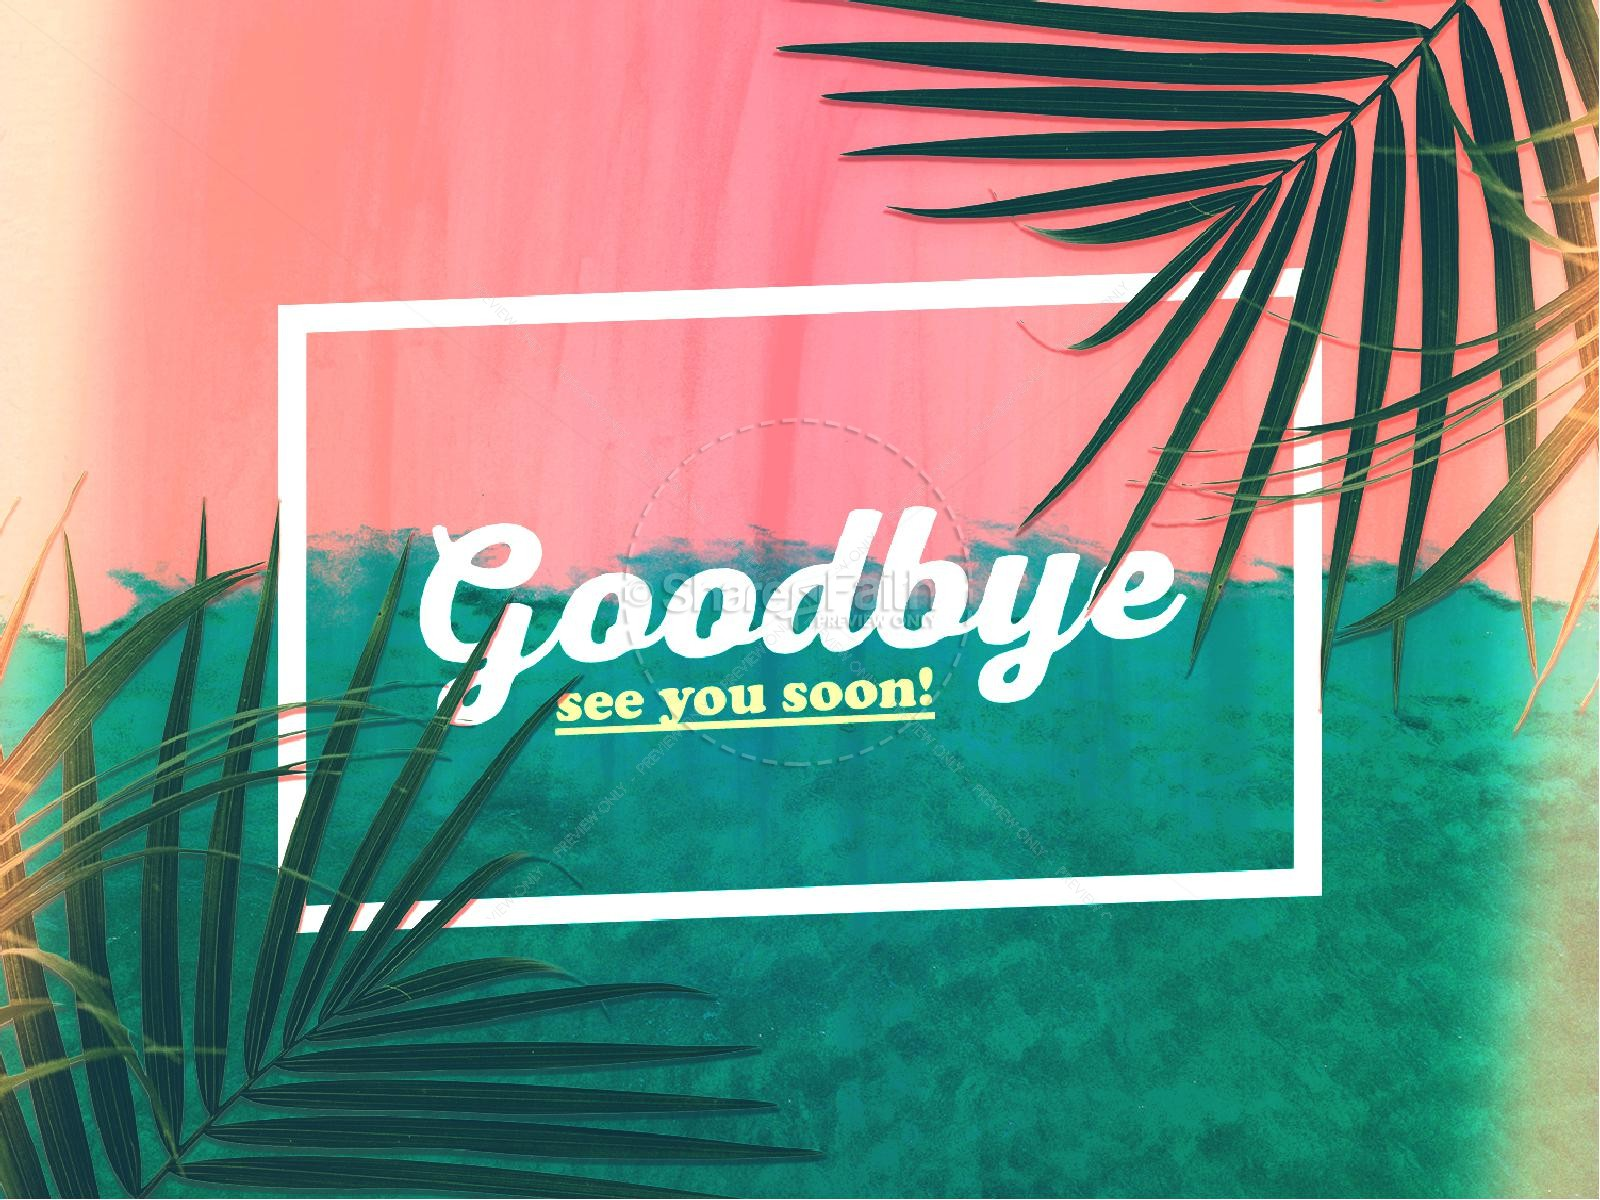 Best Summer Ever Church Title Graphic | slide 4